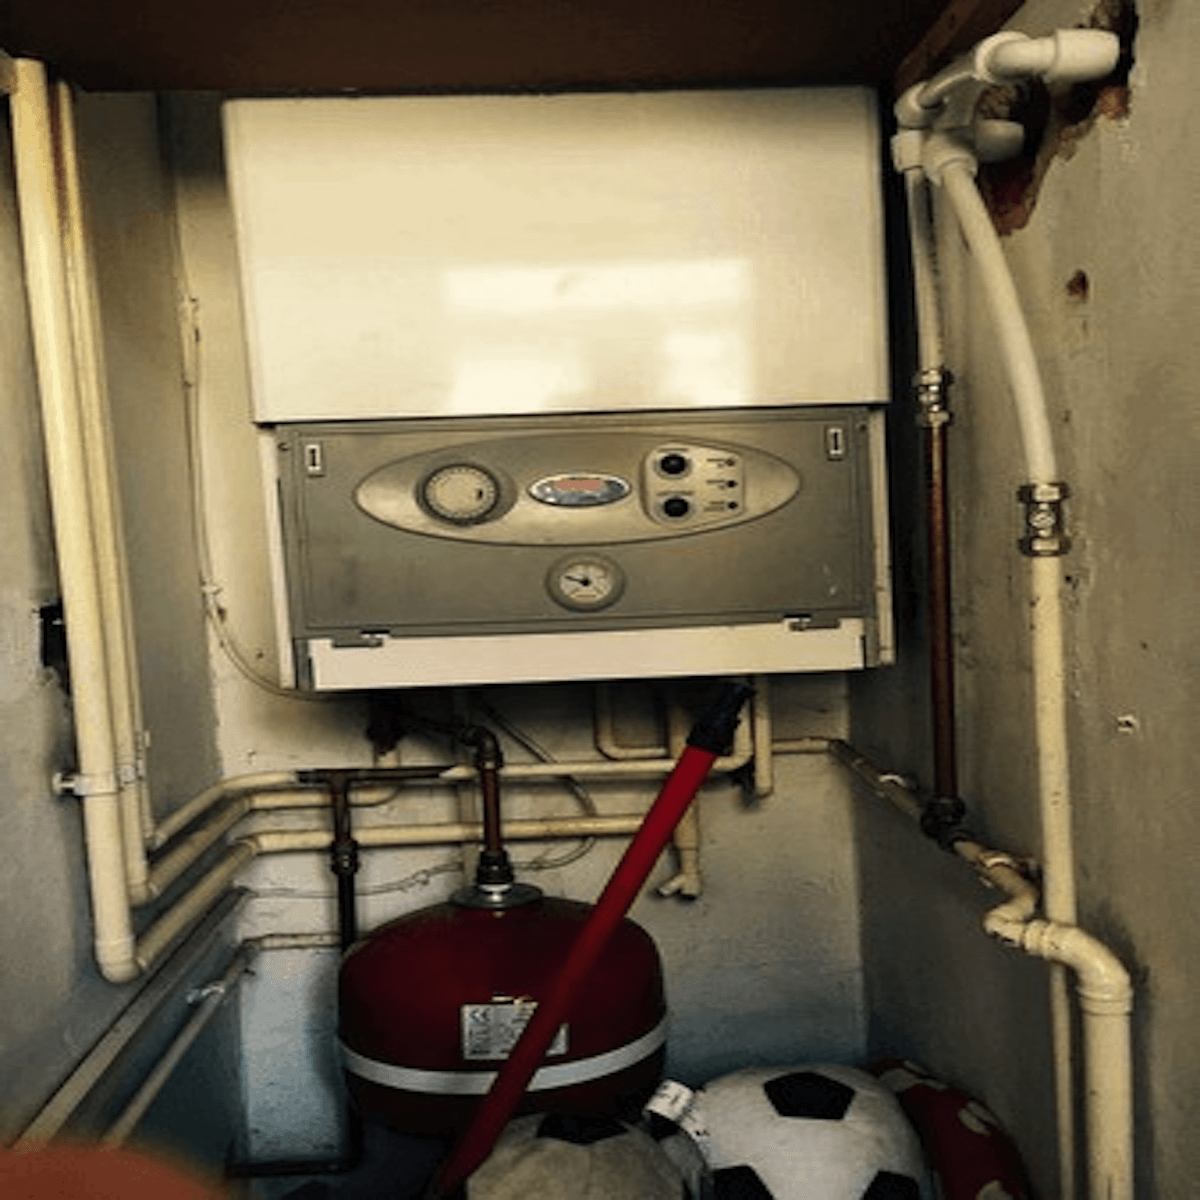 Gas Boiler Replacement in Oxfordshire